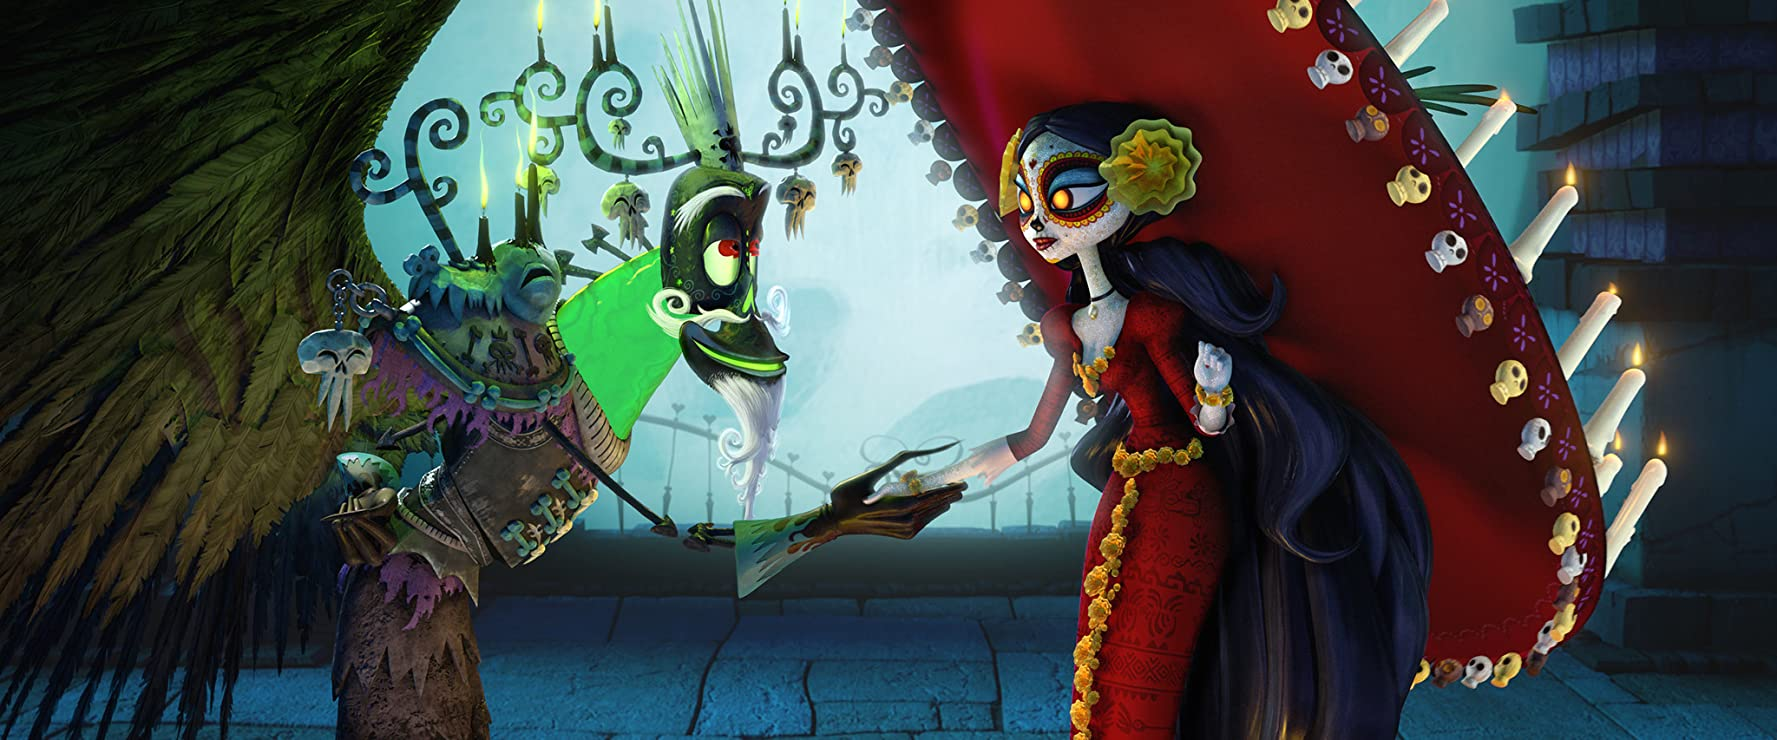 Ron Perlman and Kate del Castillo in The Book of Life (2014)